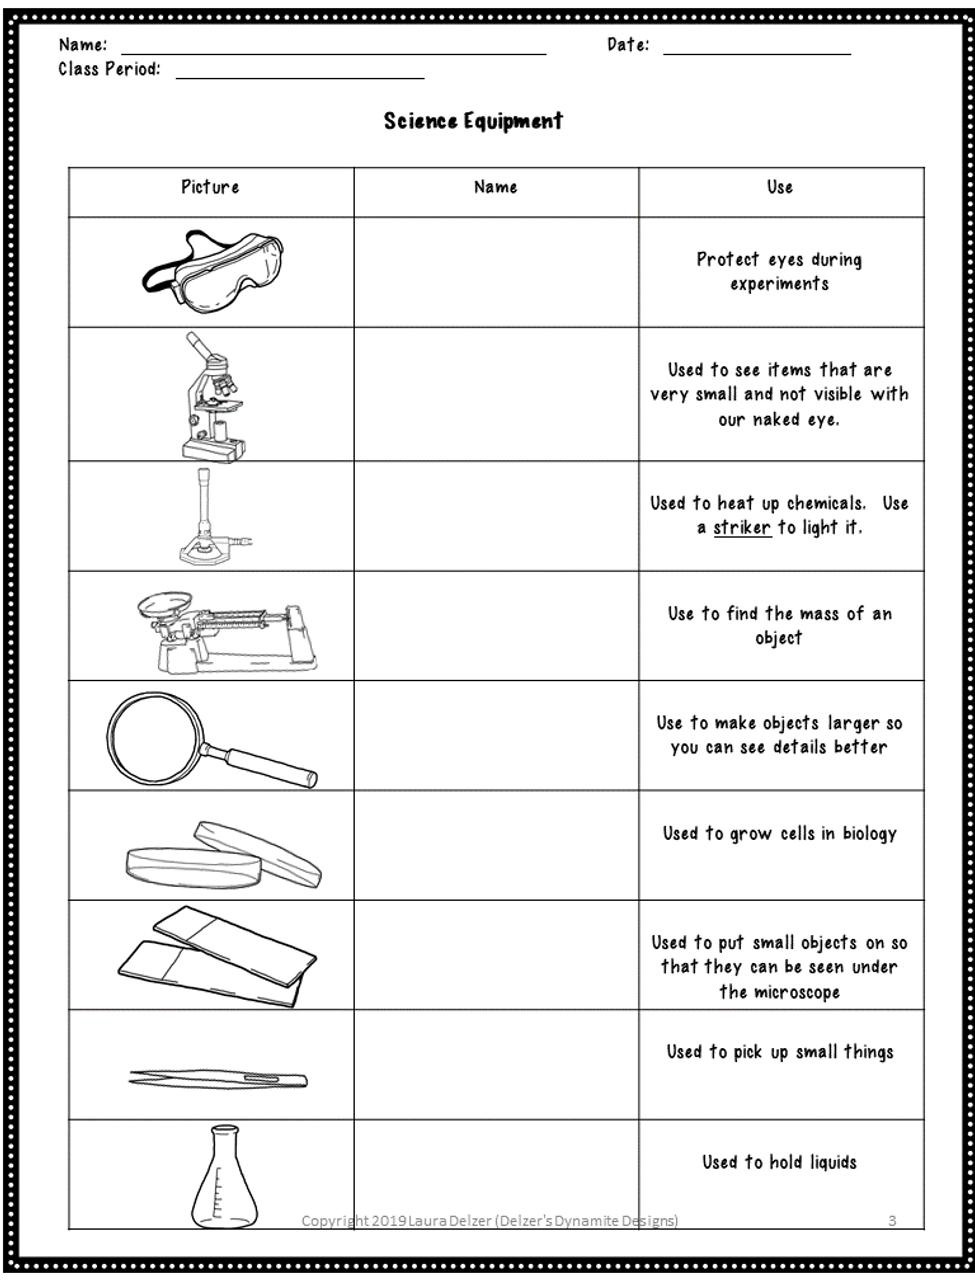 hight resolution of Lab Equipment Identification Worksheets. 36 items! - Amped Up Learning